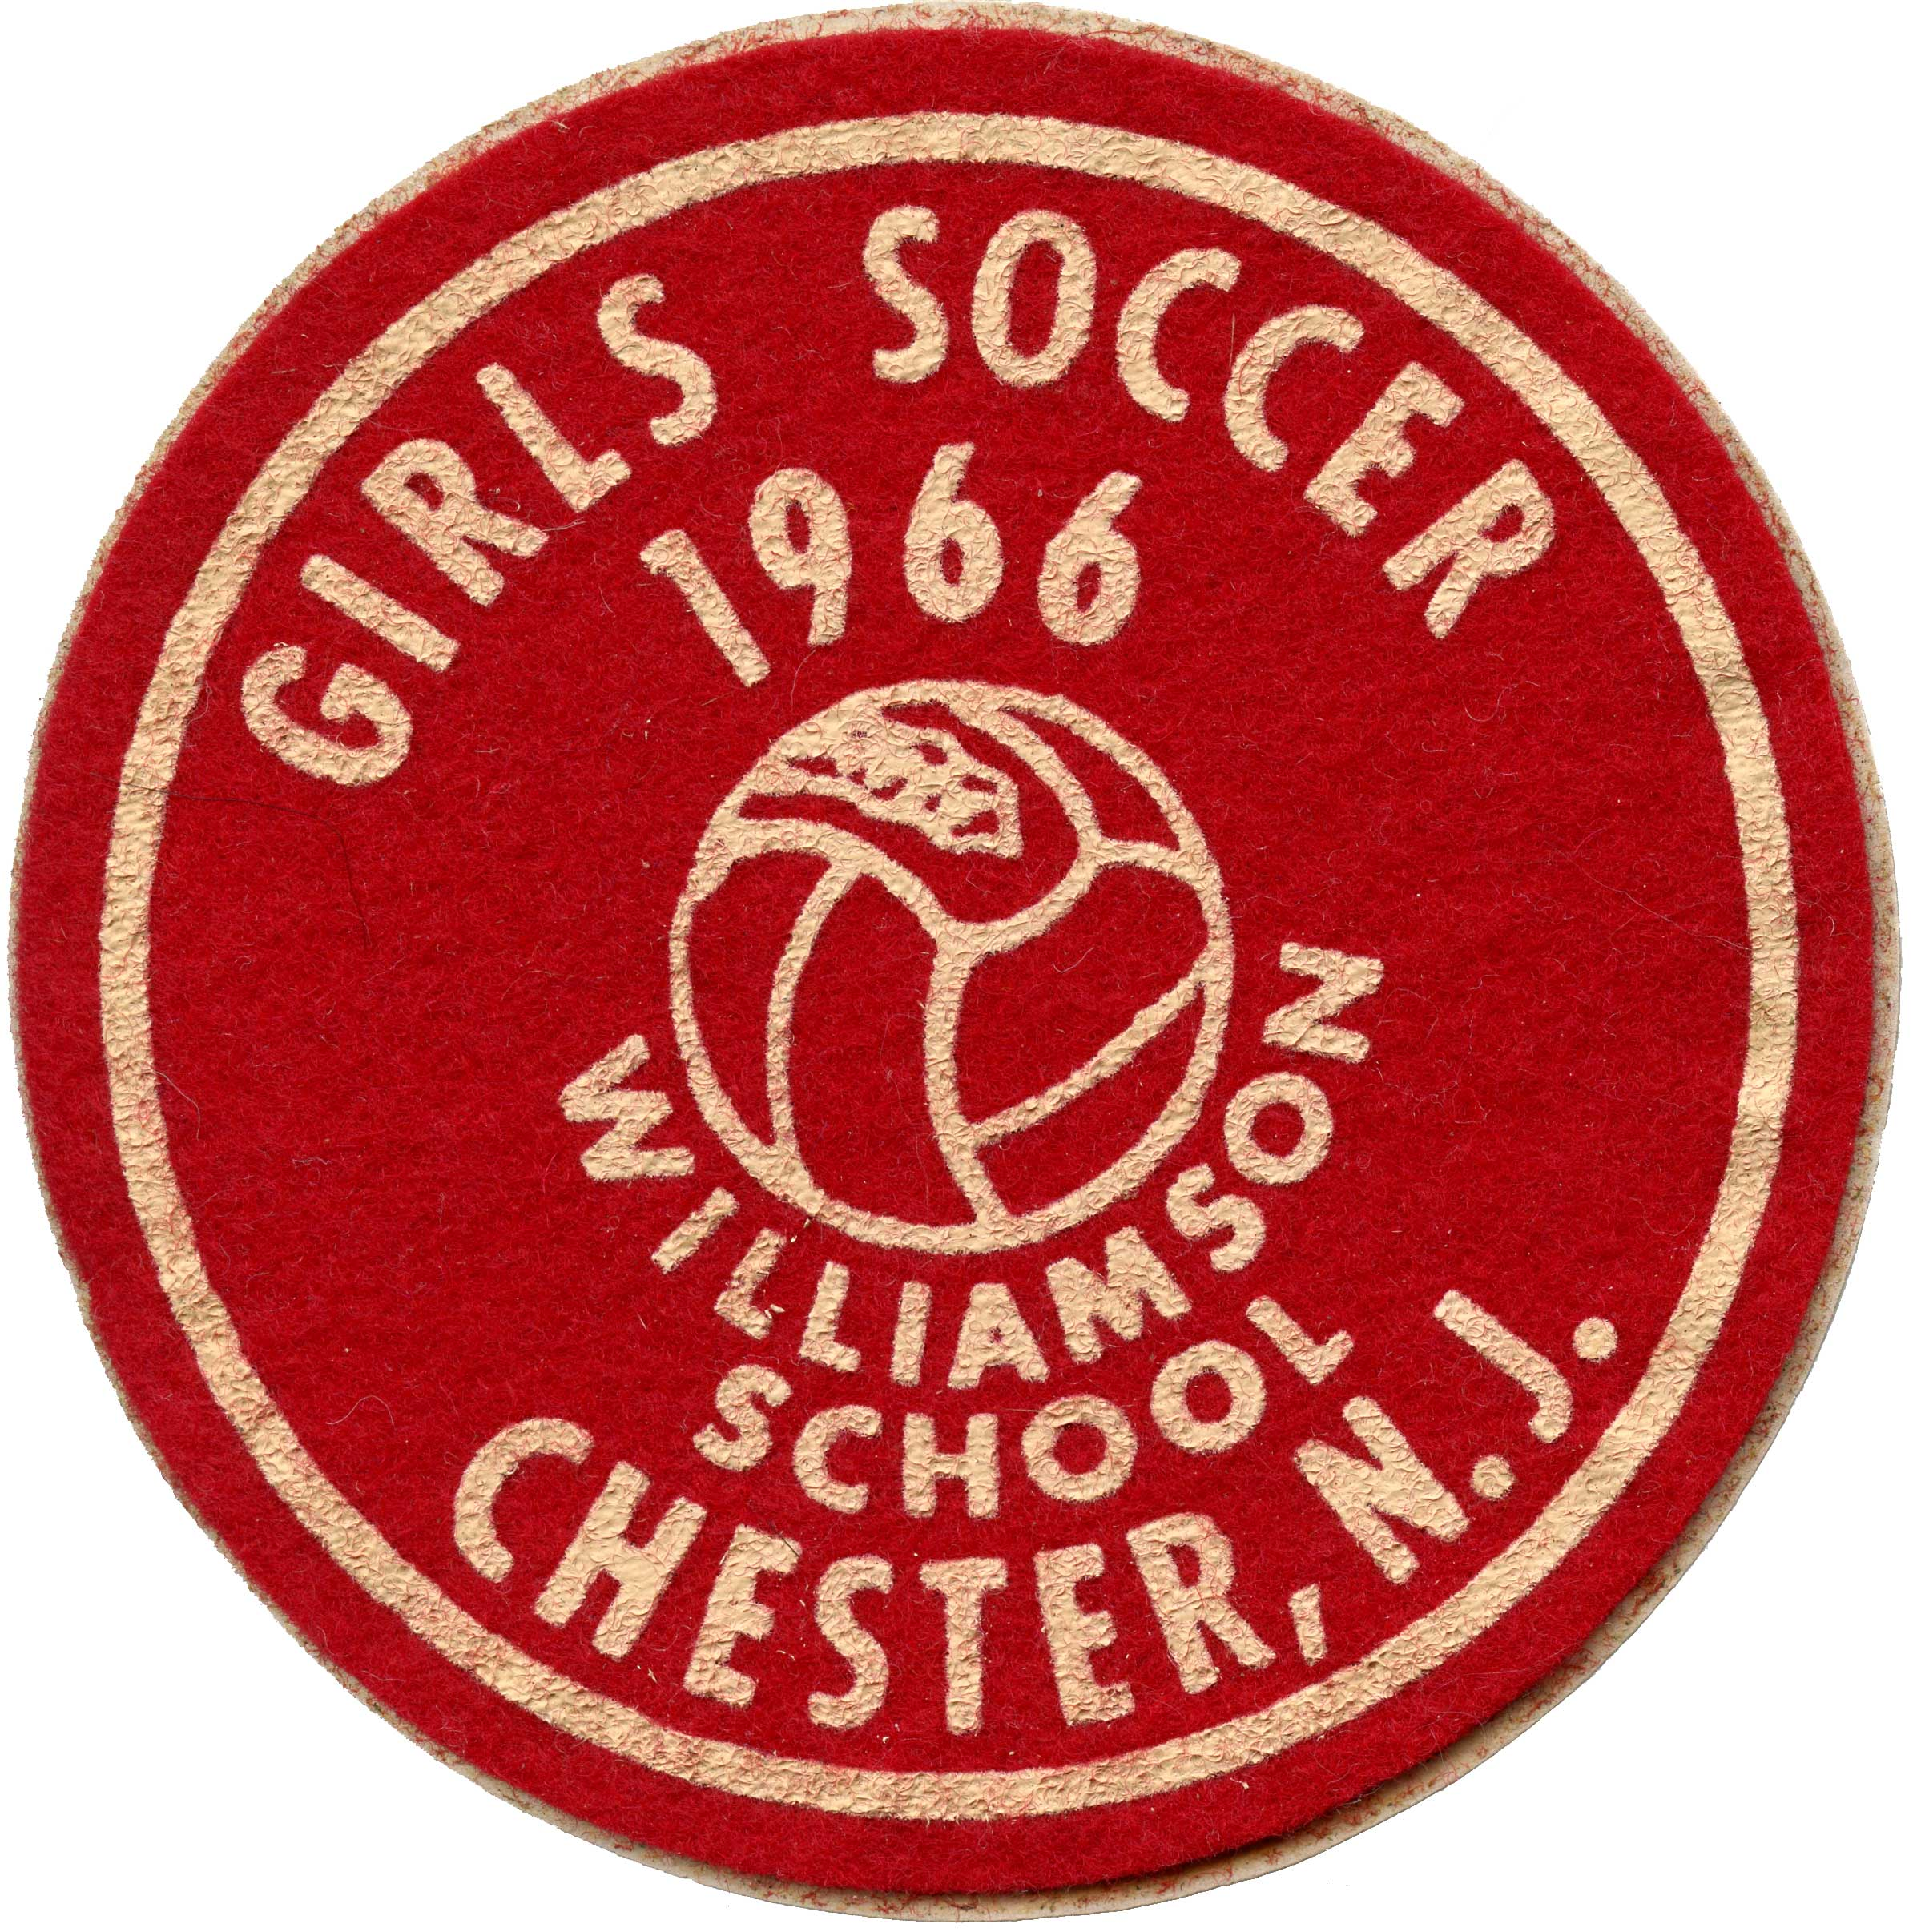 Williamson School 1966 Soccer Patch